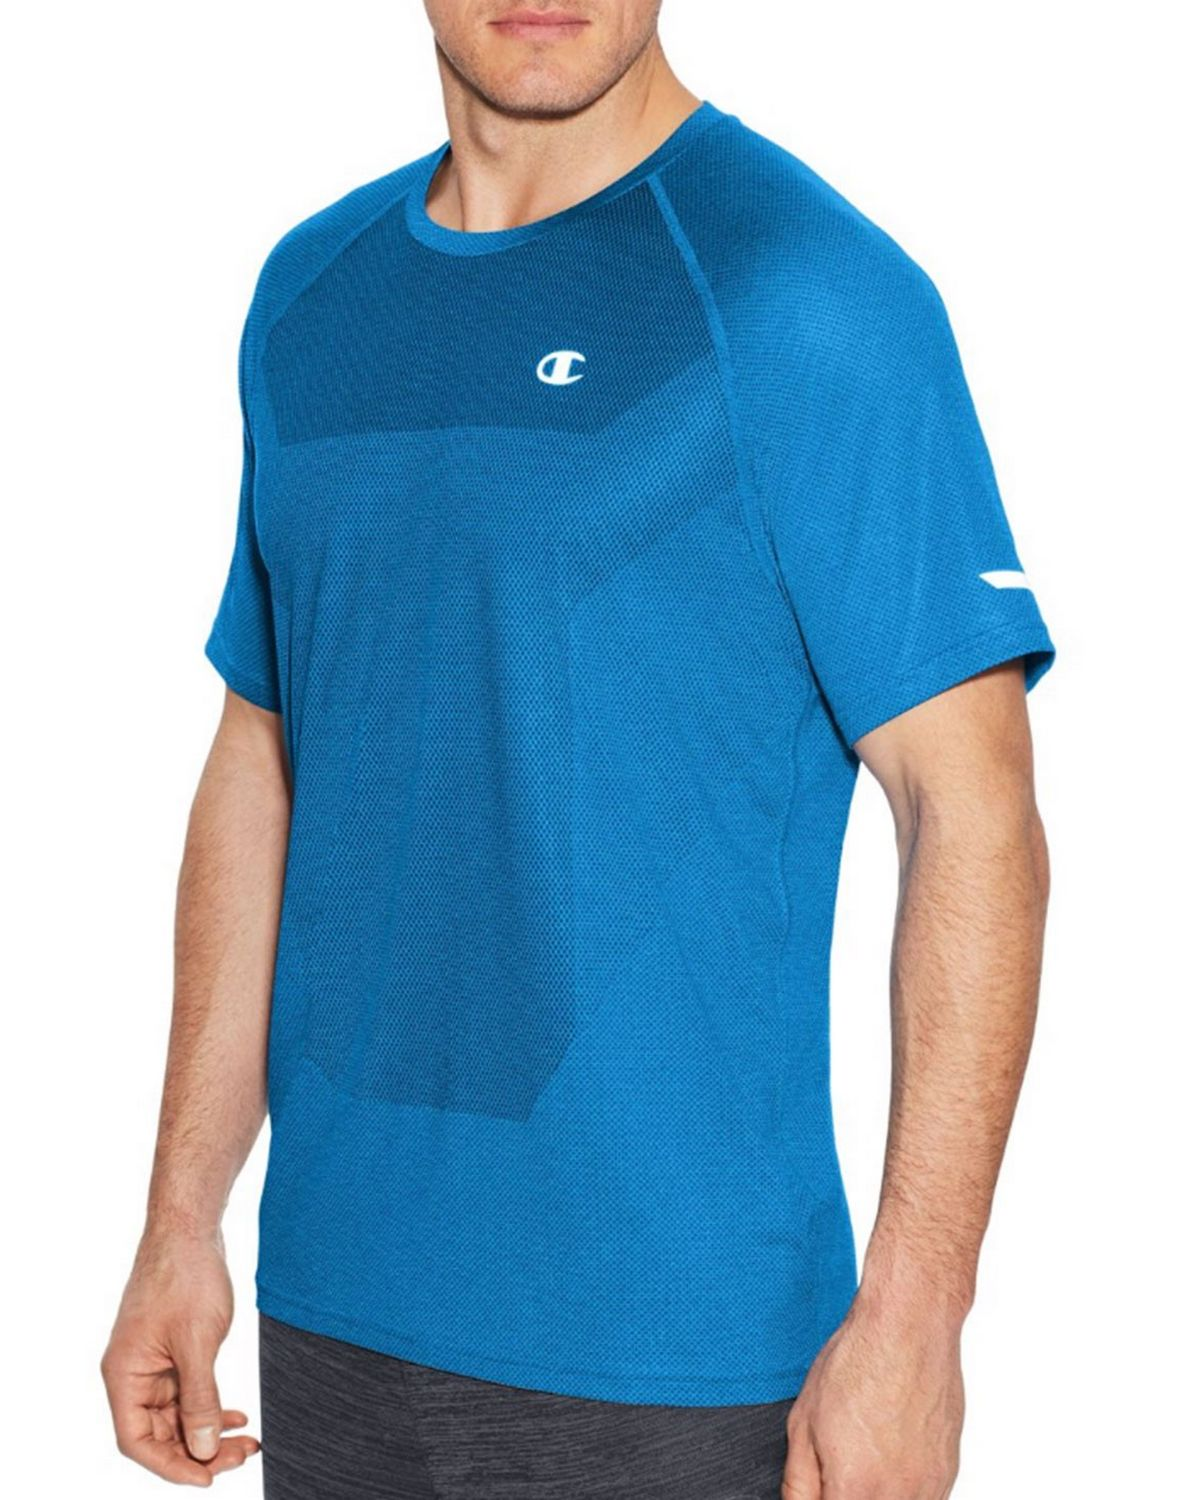 Champion T29815 Mens Training Tee - Stealth Heather - L T29815